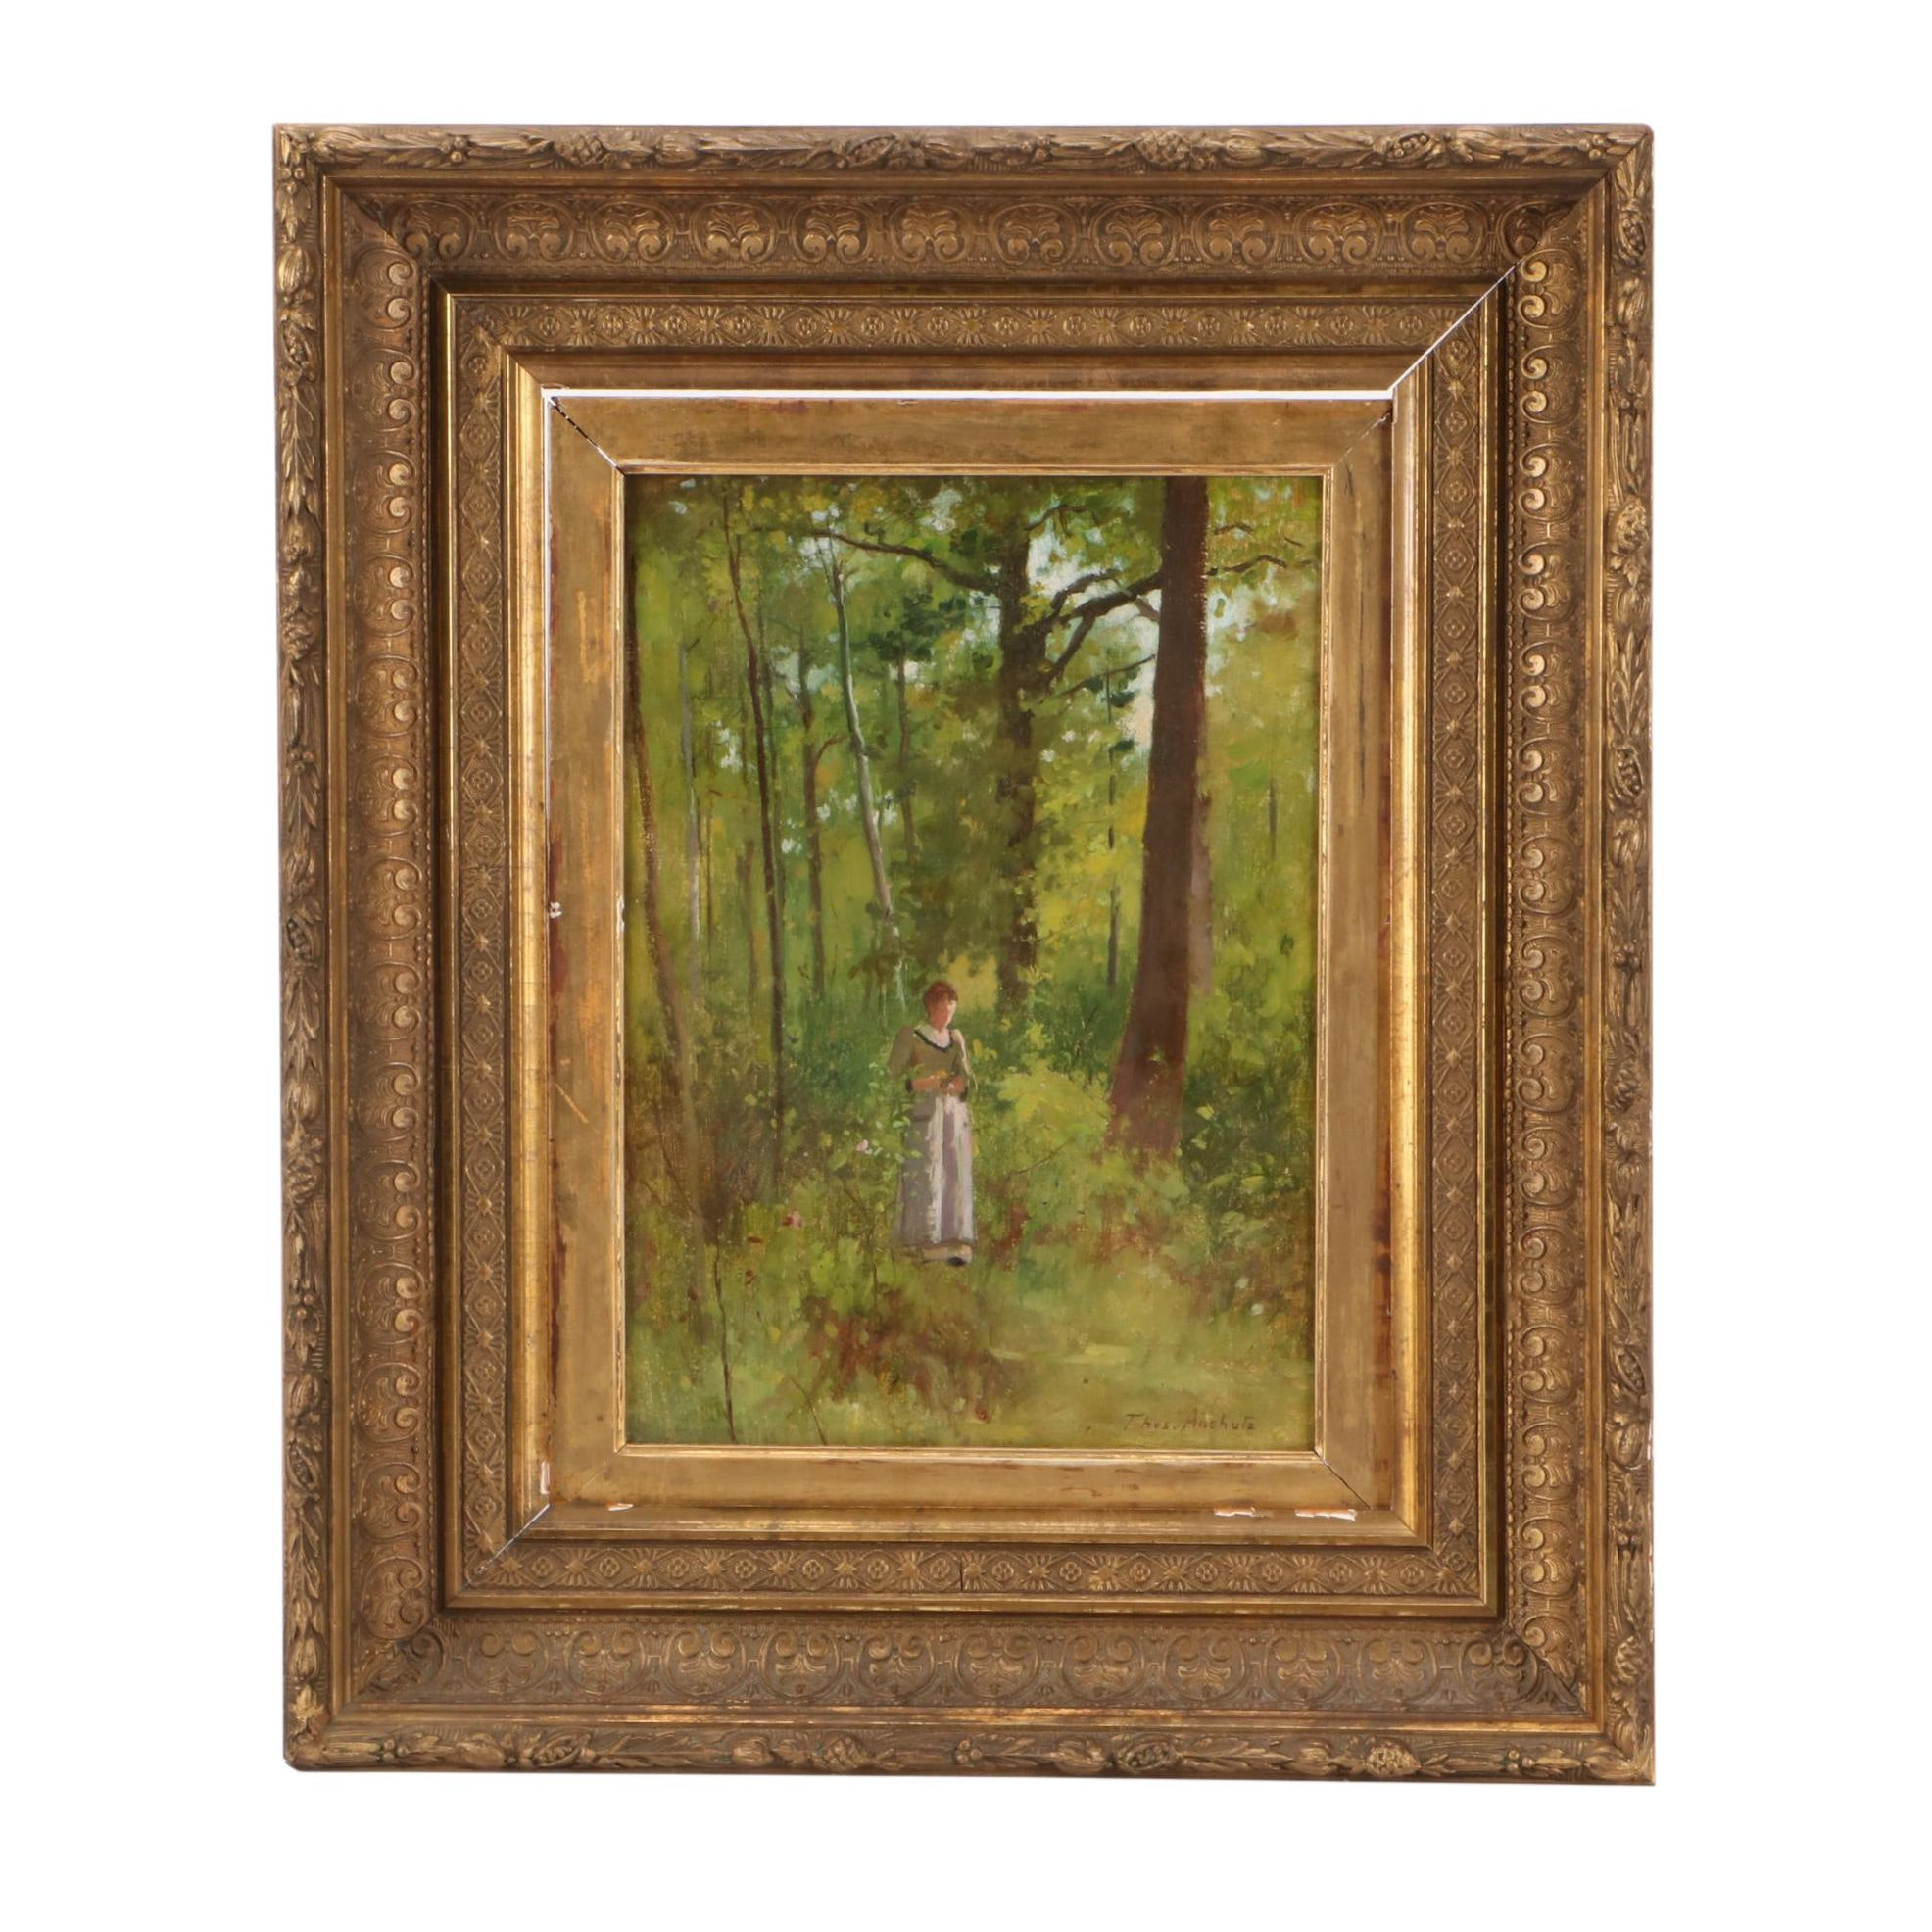 Thomas Pollack Anshutz Oil Painting of Figure in Wooded Landscape